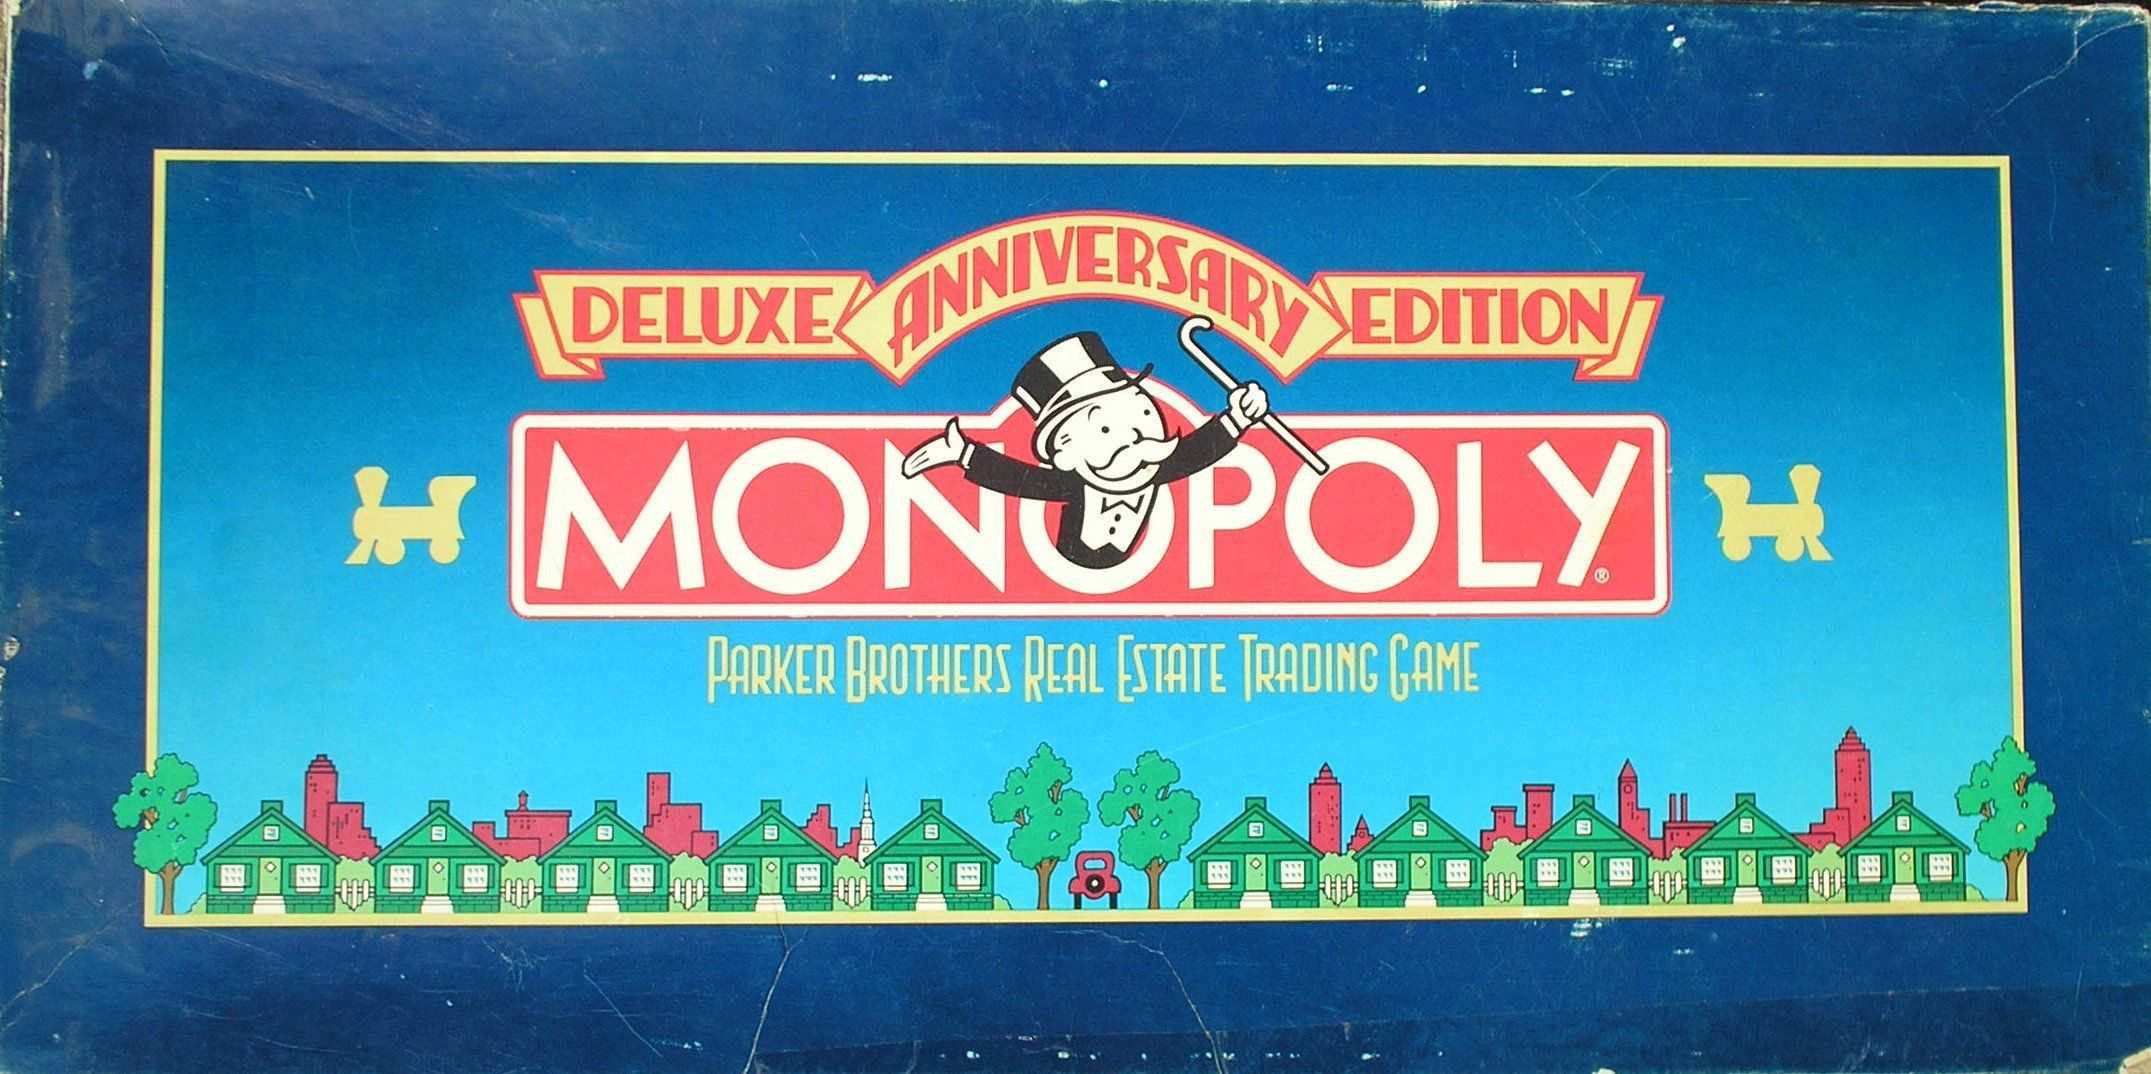 Monopoly: Deluxe Anniversary Edition